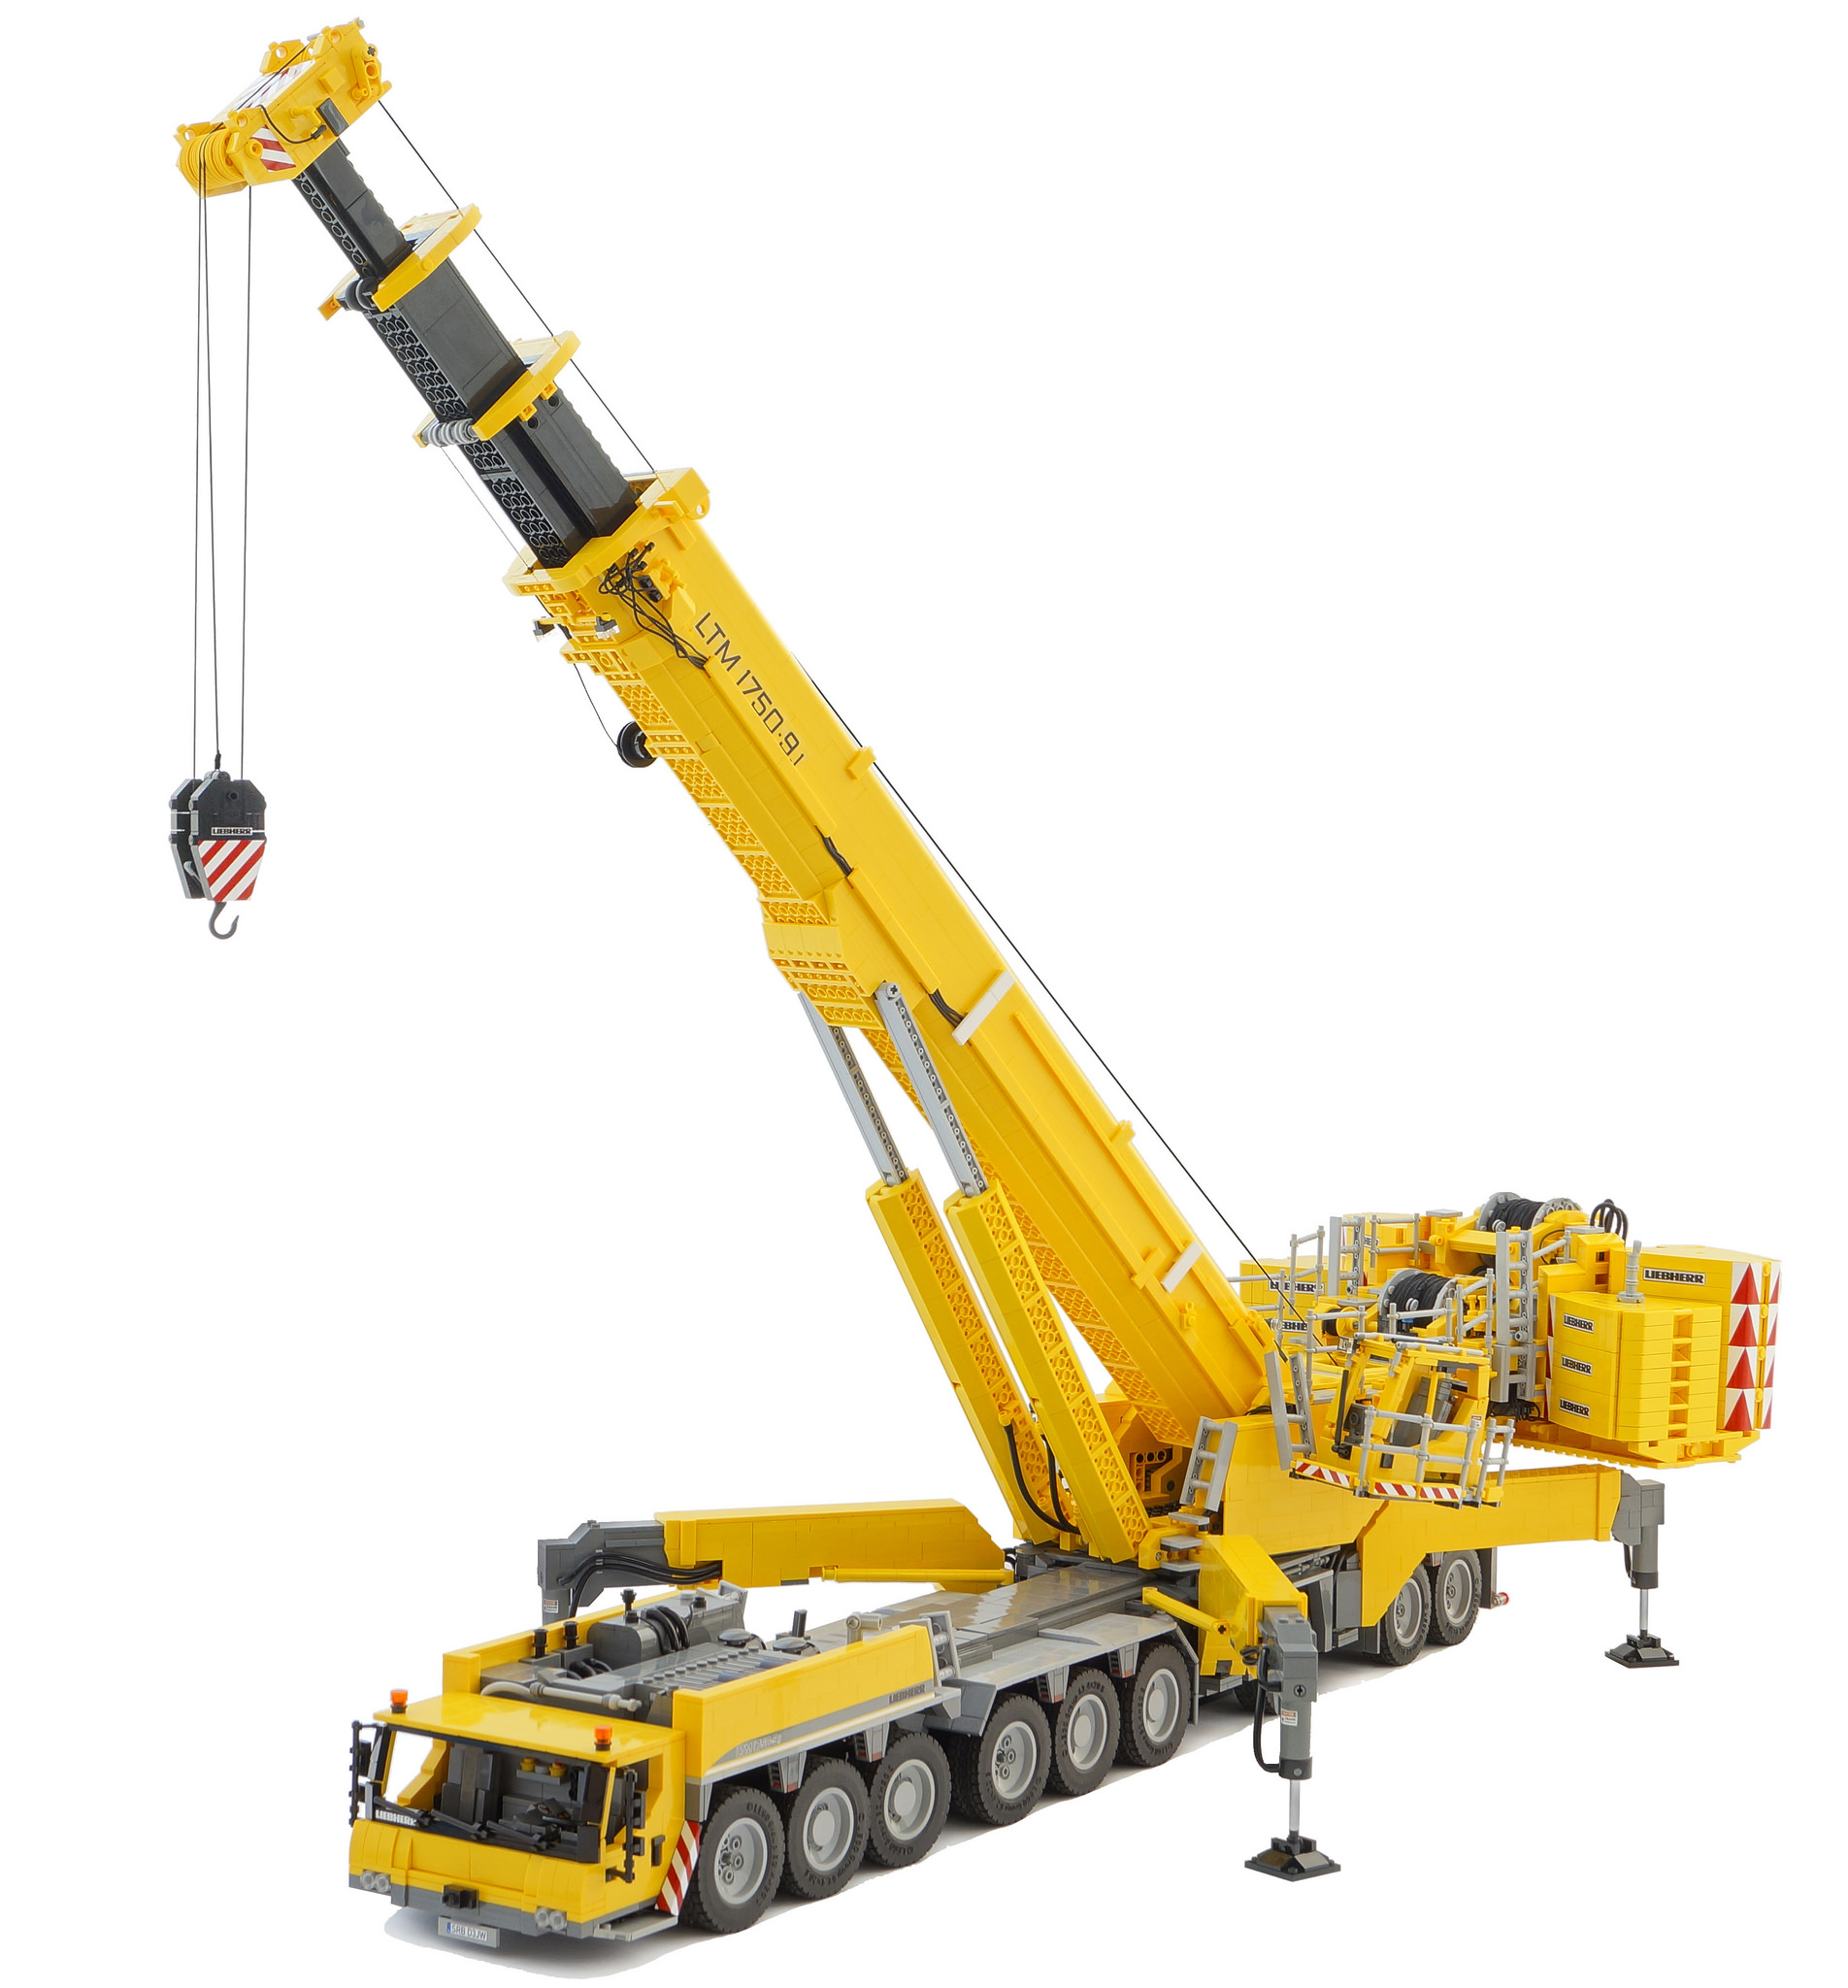 Incredible Remote Controlled Lego Model Liebherr Ltm 1750 91 Mobile